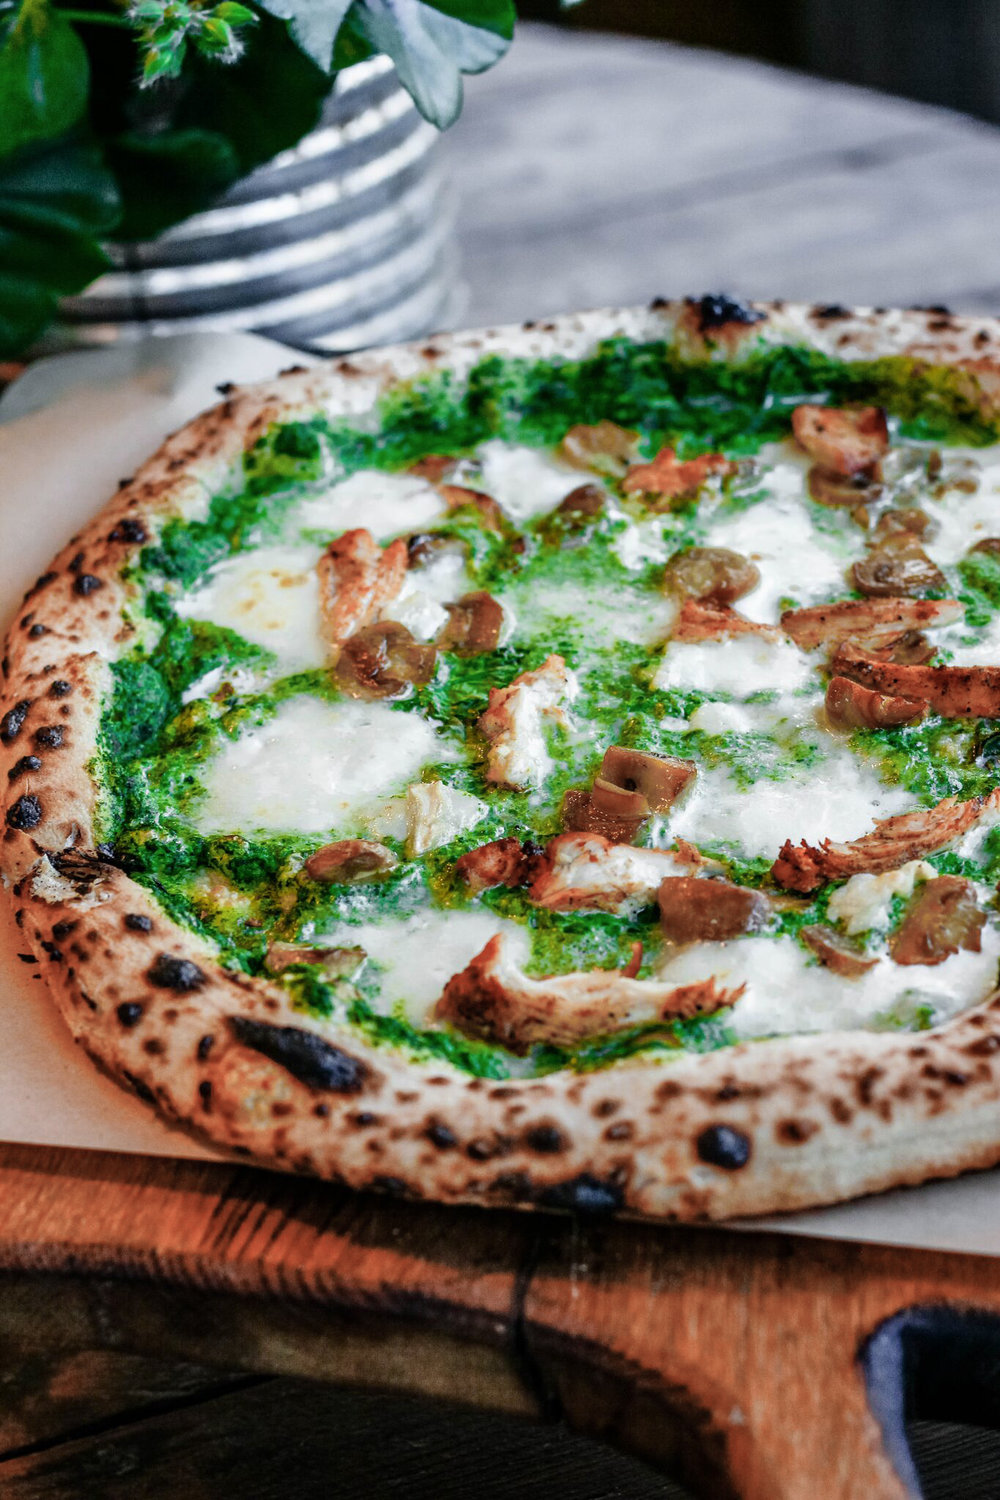 Pizza Verde 9€    Fior di latte cheese, ricotta cheese, goat cheese, spinach, grilled chicken, mushrooms   Again such a juicy pizza and goat cheese and chicken fitted together very well.